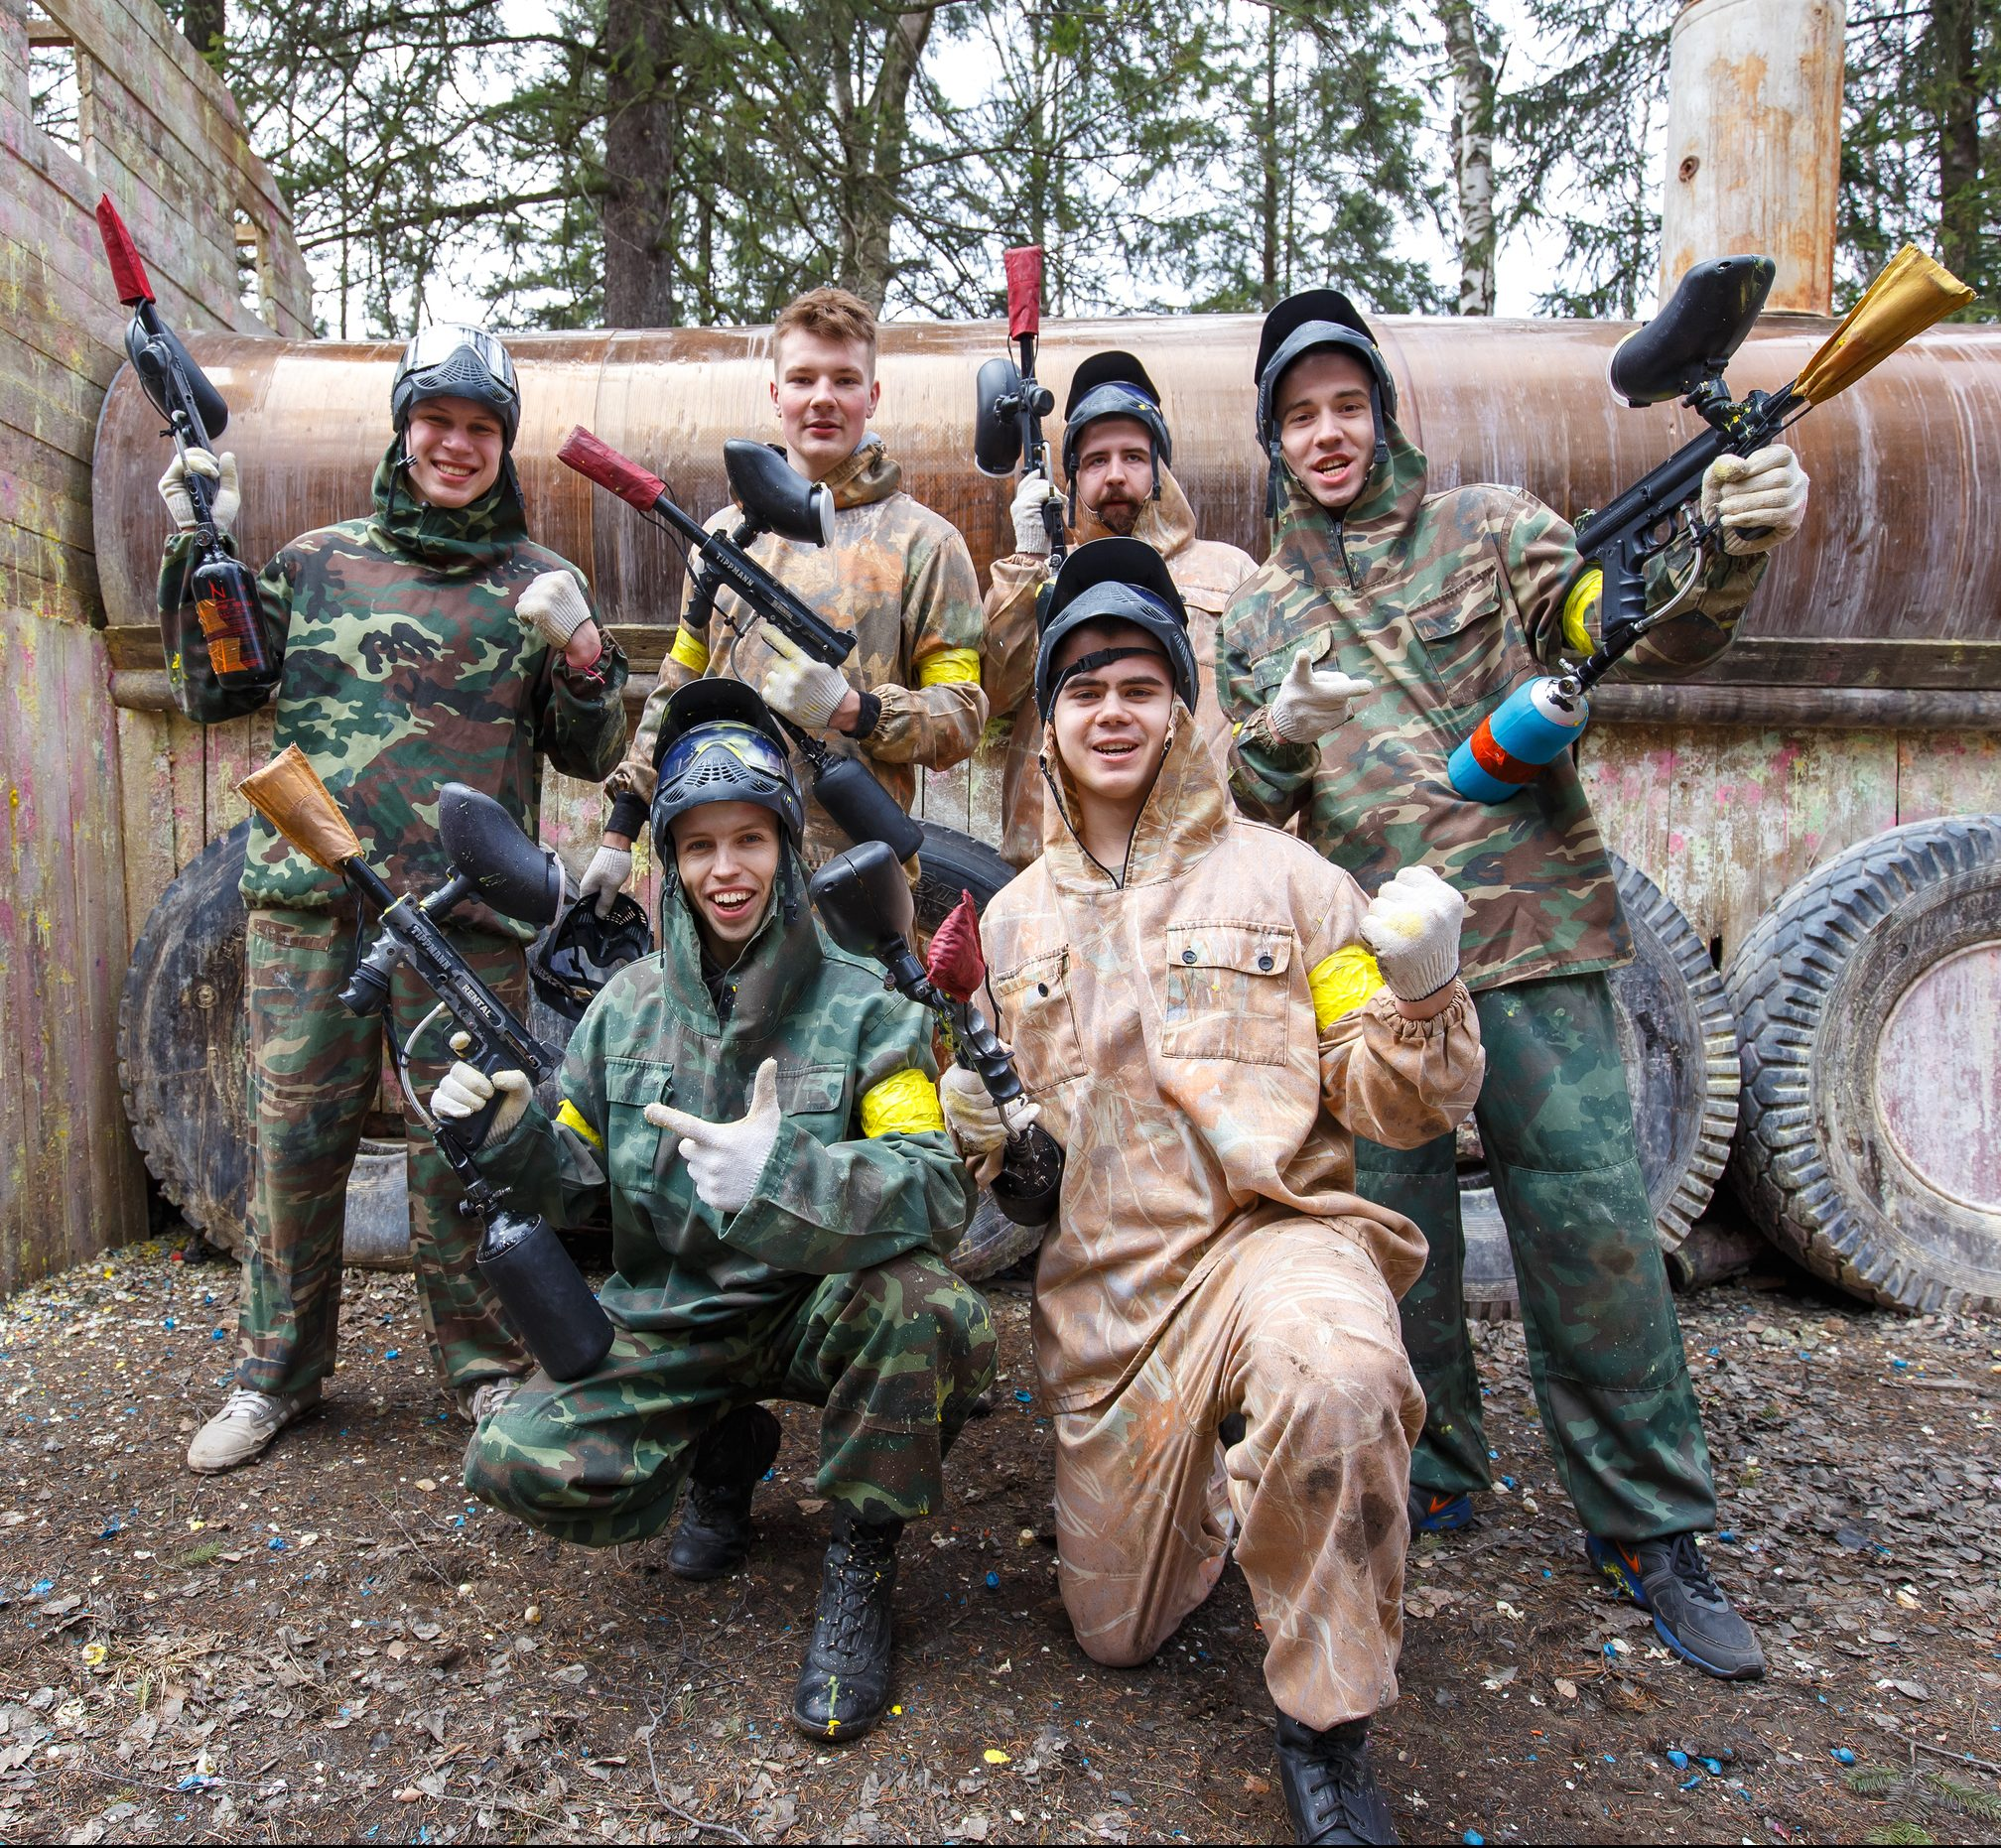 group of friends posing with paintball markers and equipment